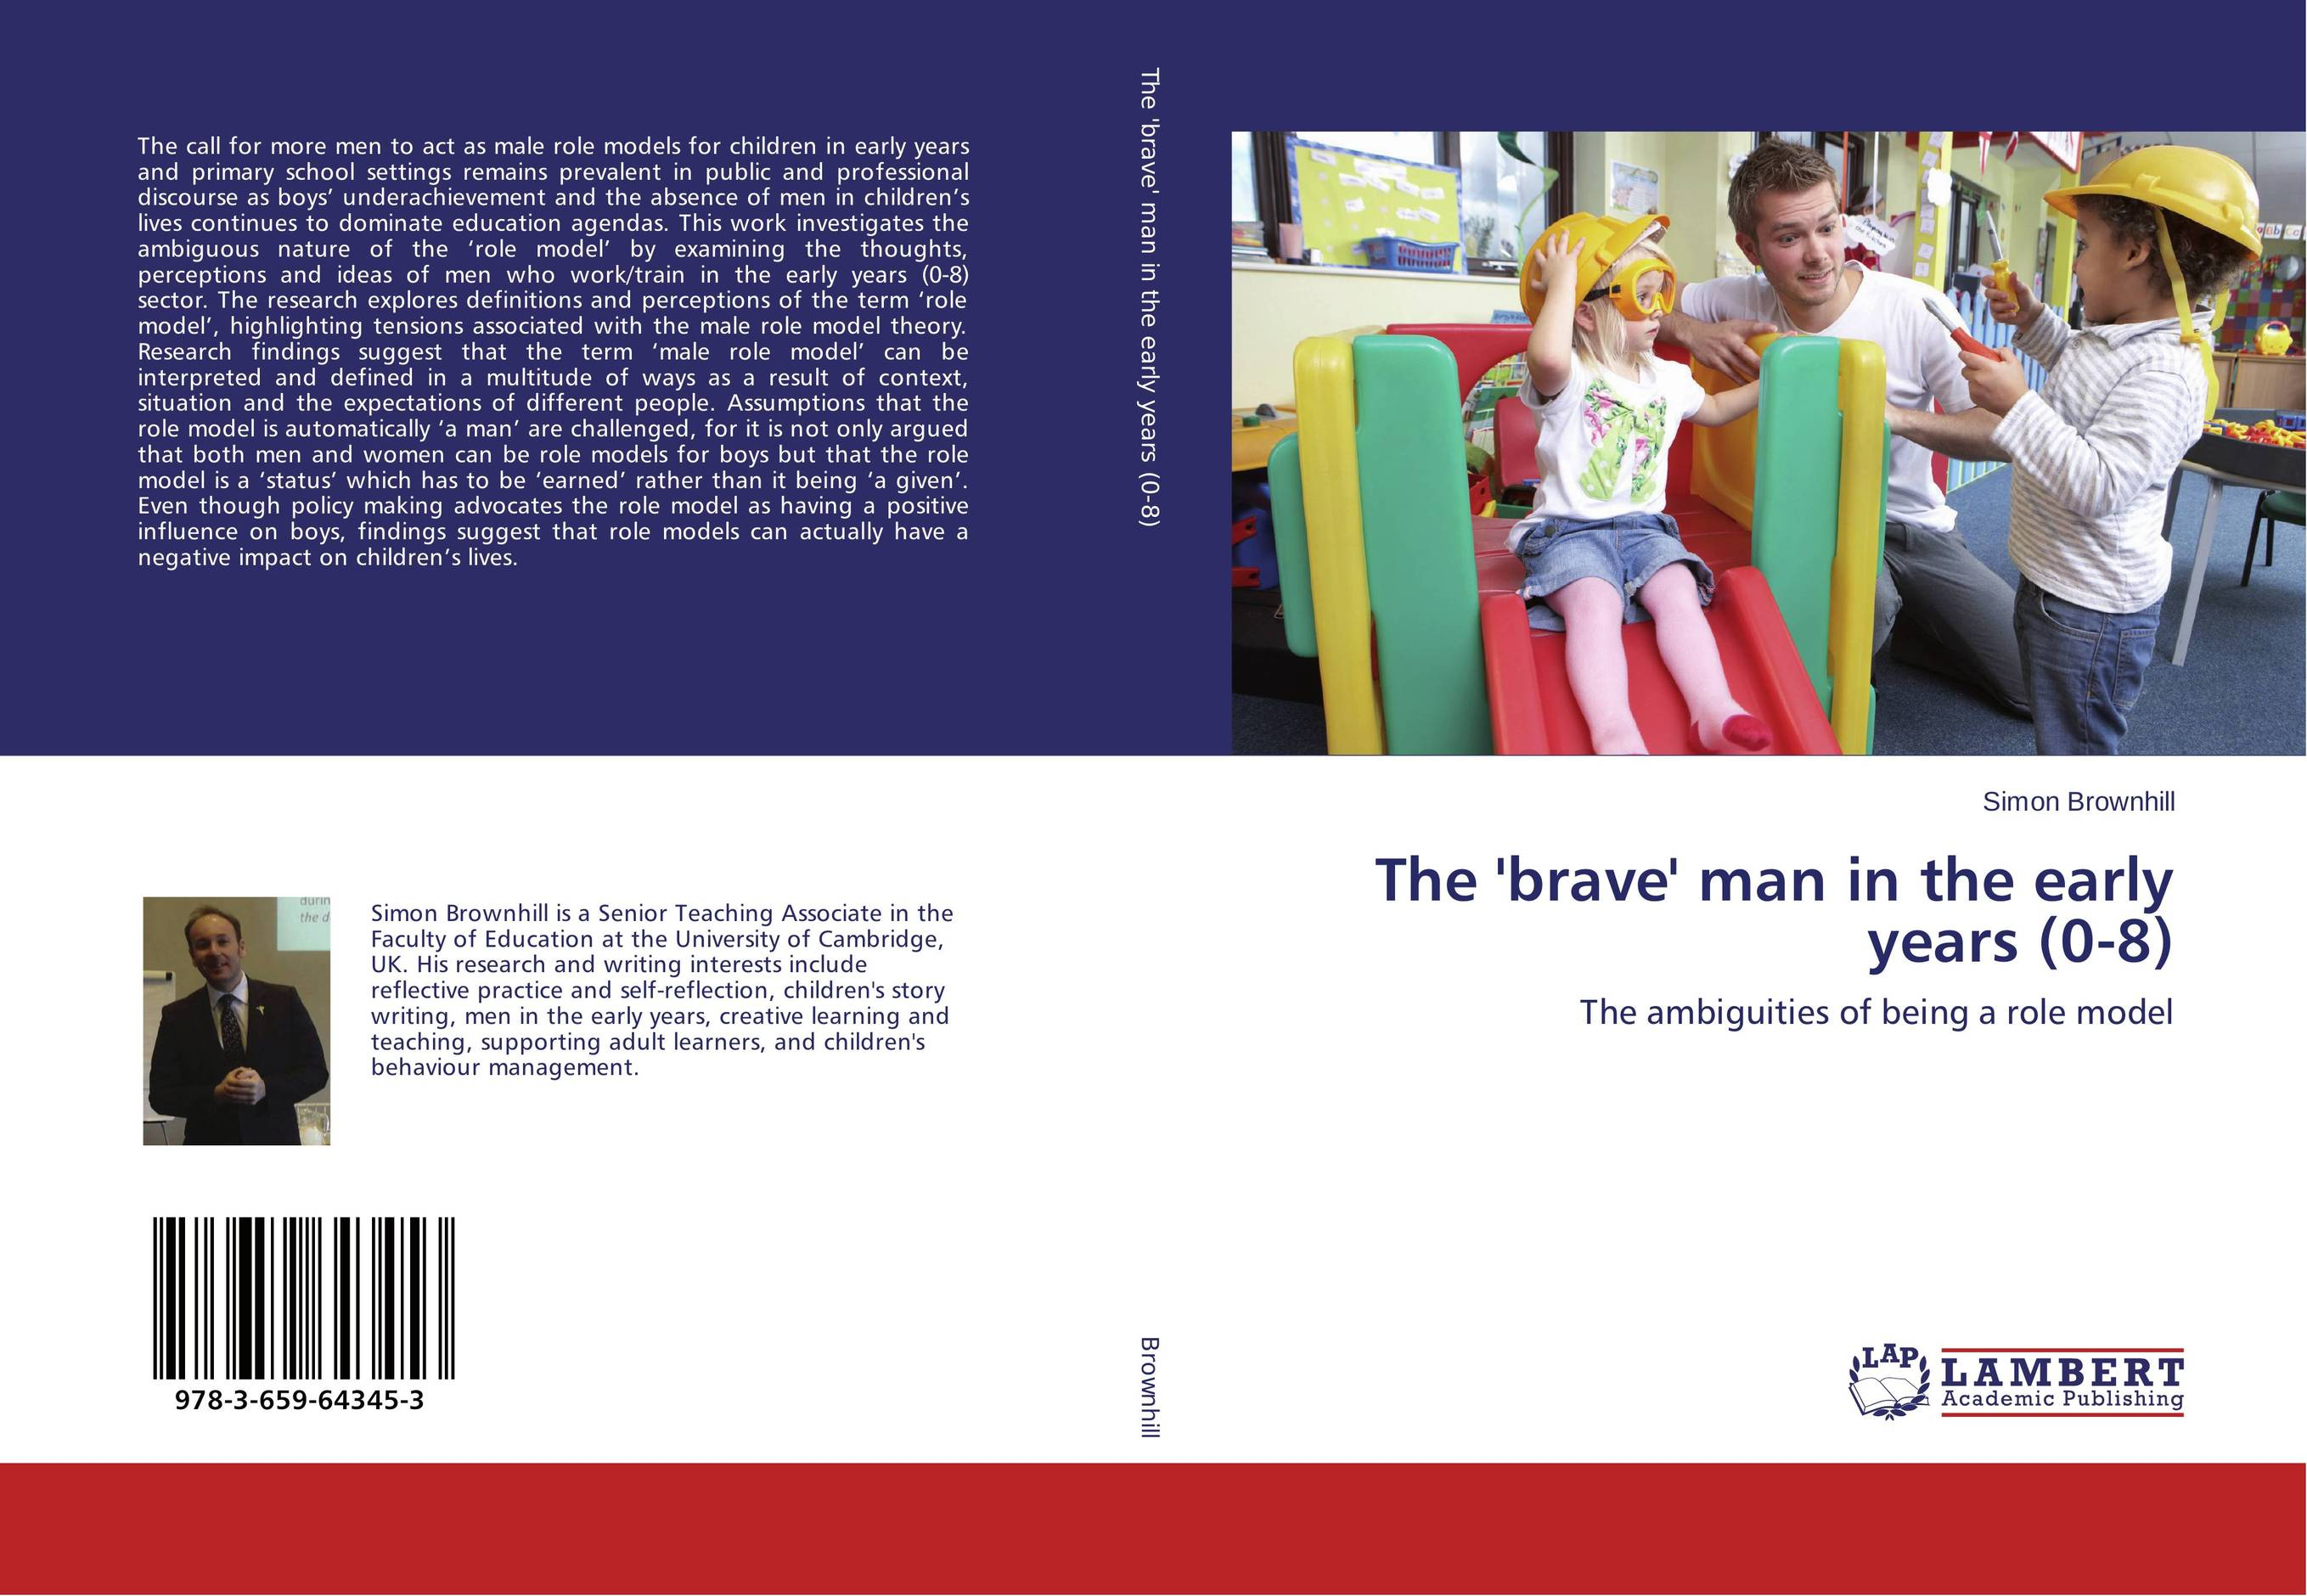 The 'brave' man in the early years (0-8) the role of evaluation as a mechanism for advancing principal practice